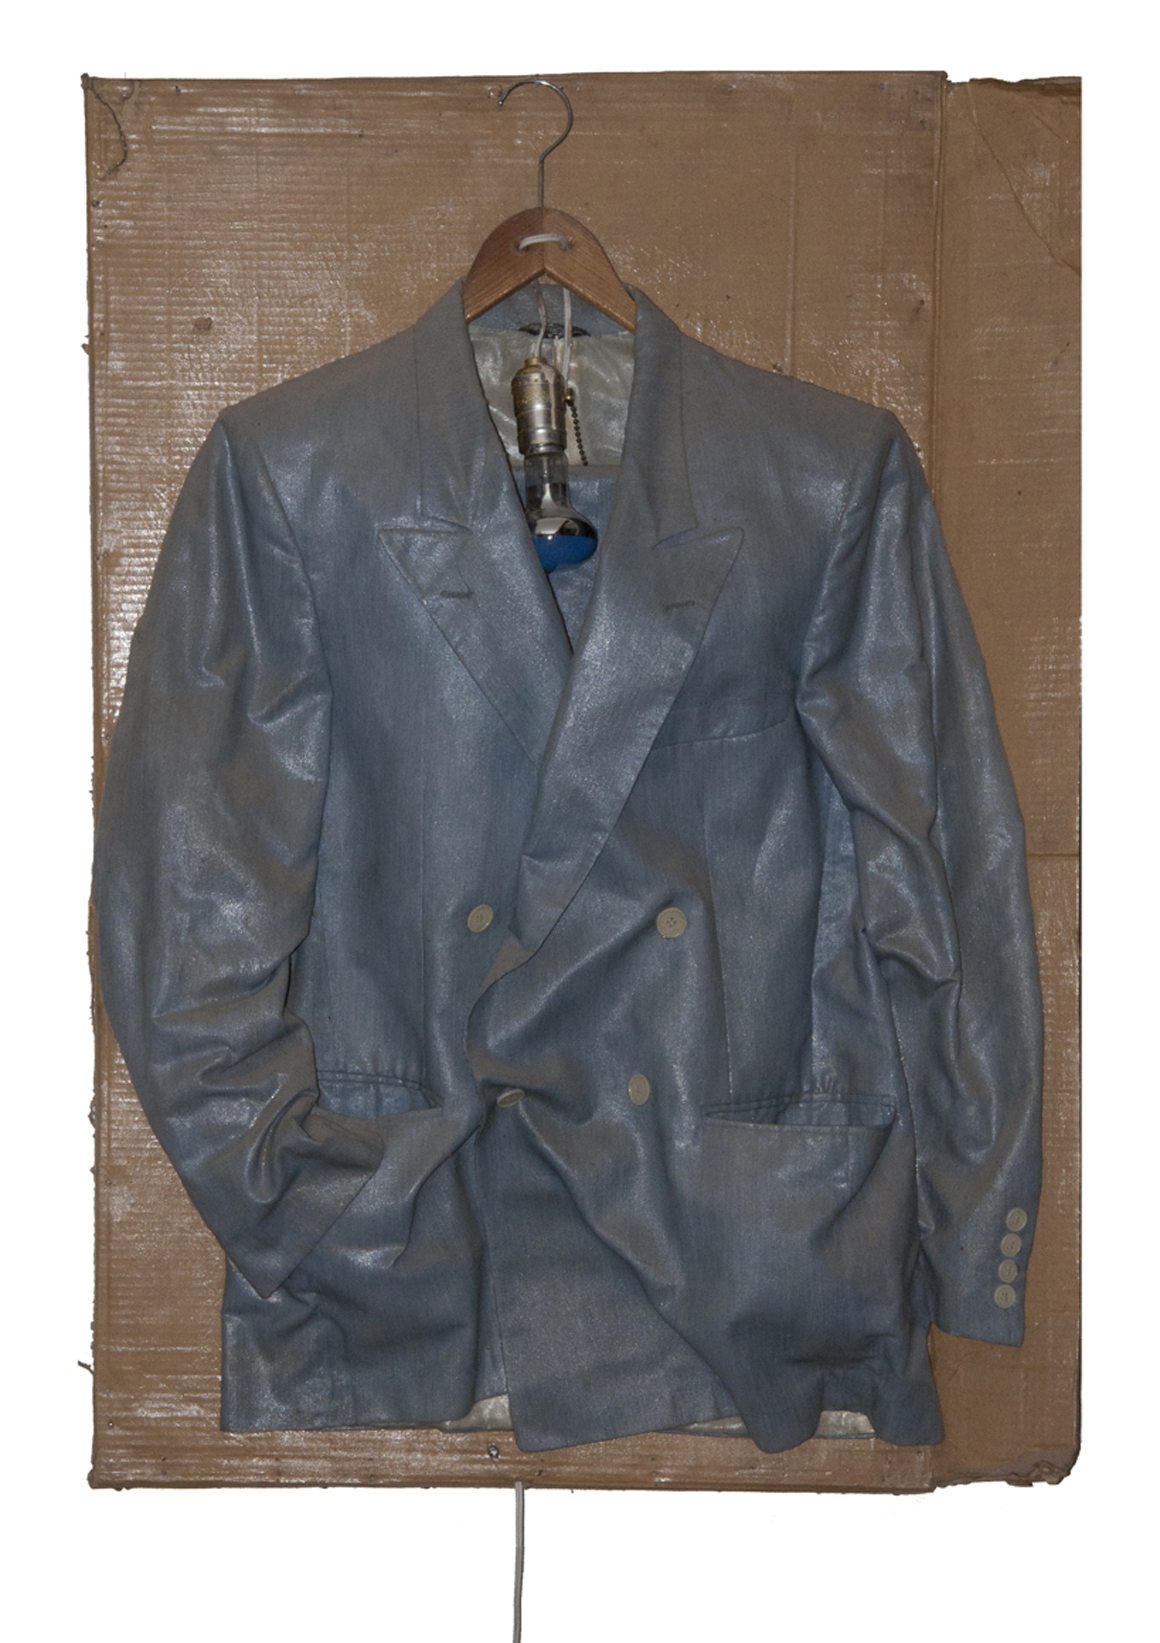 "<p><span class=""name"">Fritz Fox</span><br><em>Suit Jacket Night Light</em><span class='media'>mixed media</span>199<br><a class='inquire' href='mailto:info@gildargallery.com?subject=Artwork Inquiry FFOX0003&body=I am interested in finding out more about Suit Jacket Night Light by Fritz Fox'>Inquire</a></p>"